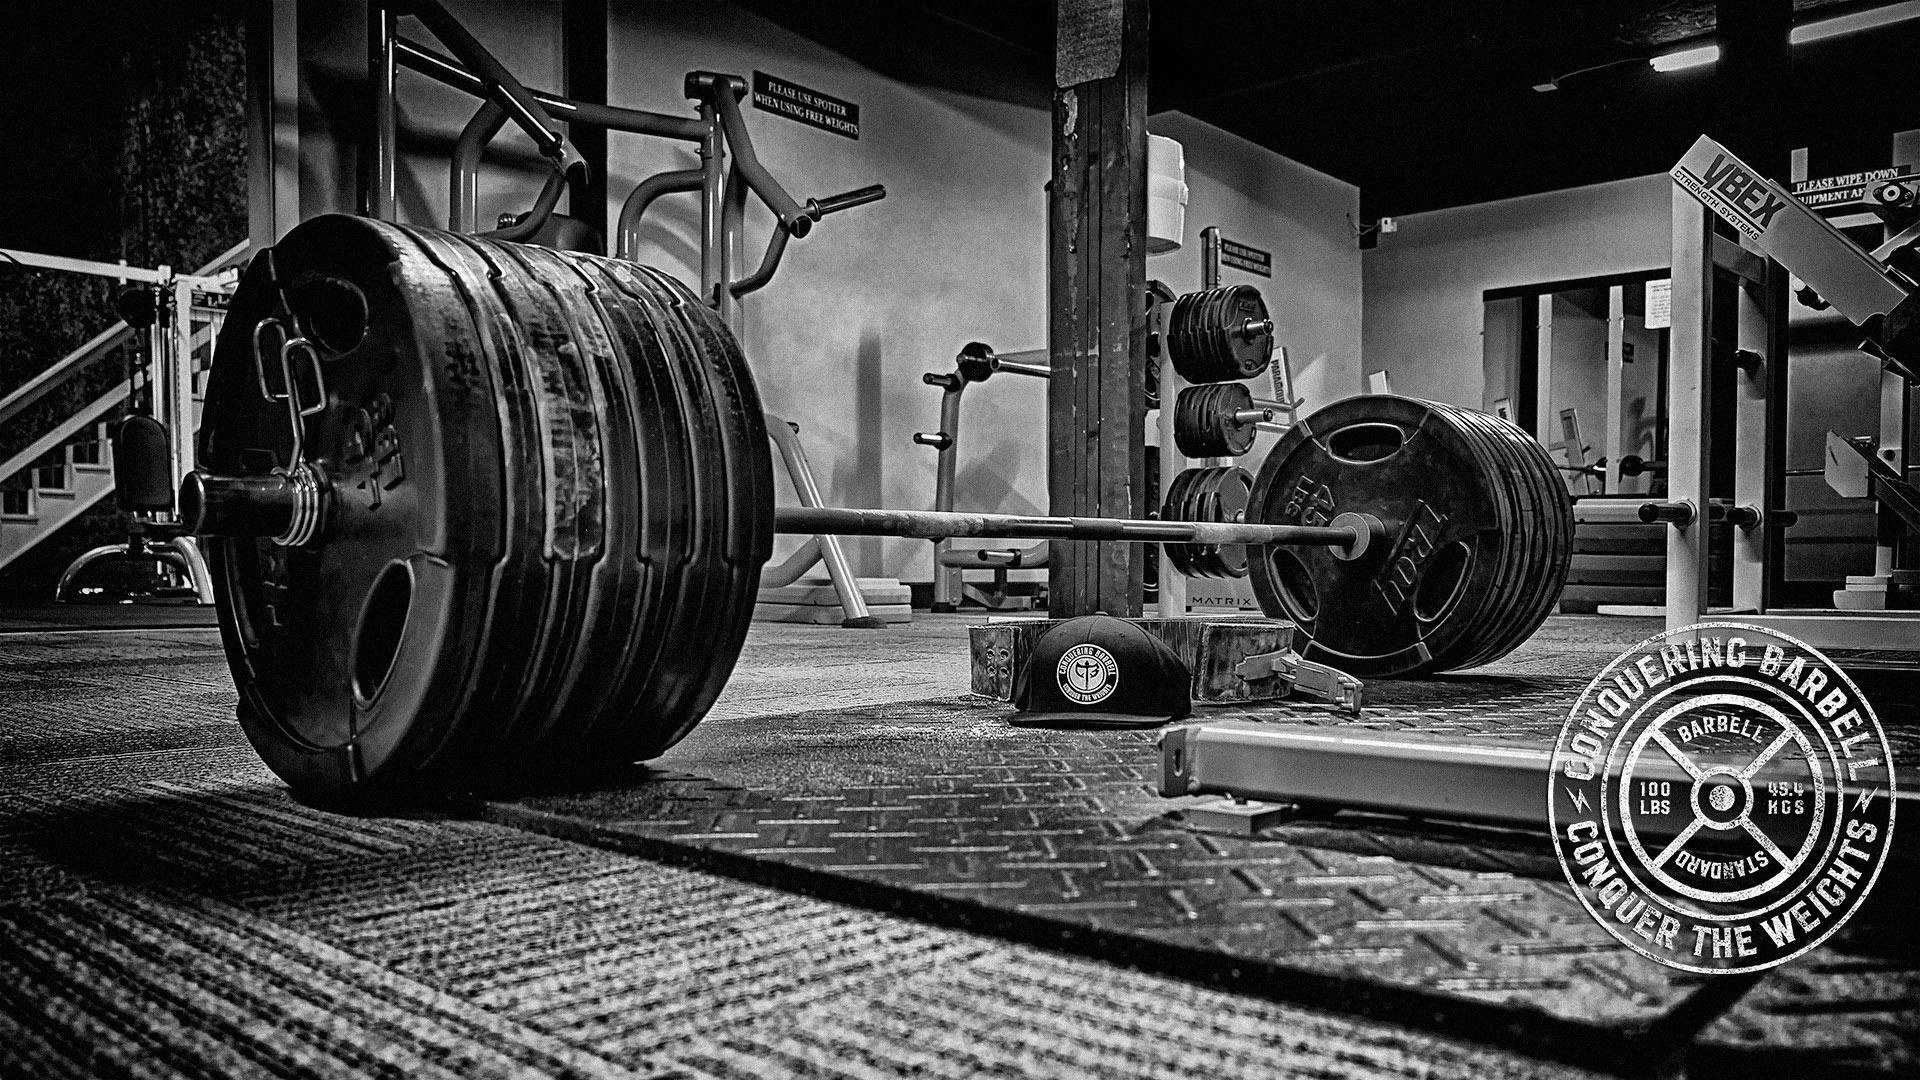 Res: 1920x1080, CONQUER THE WEIGHTS